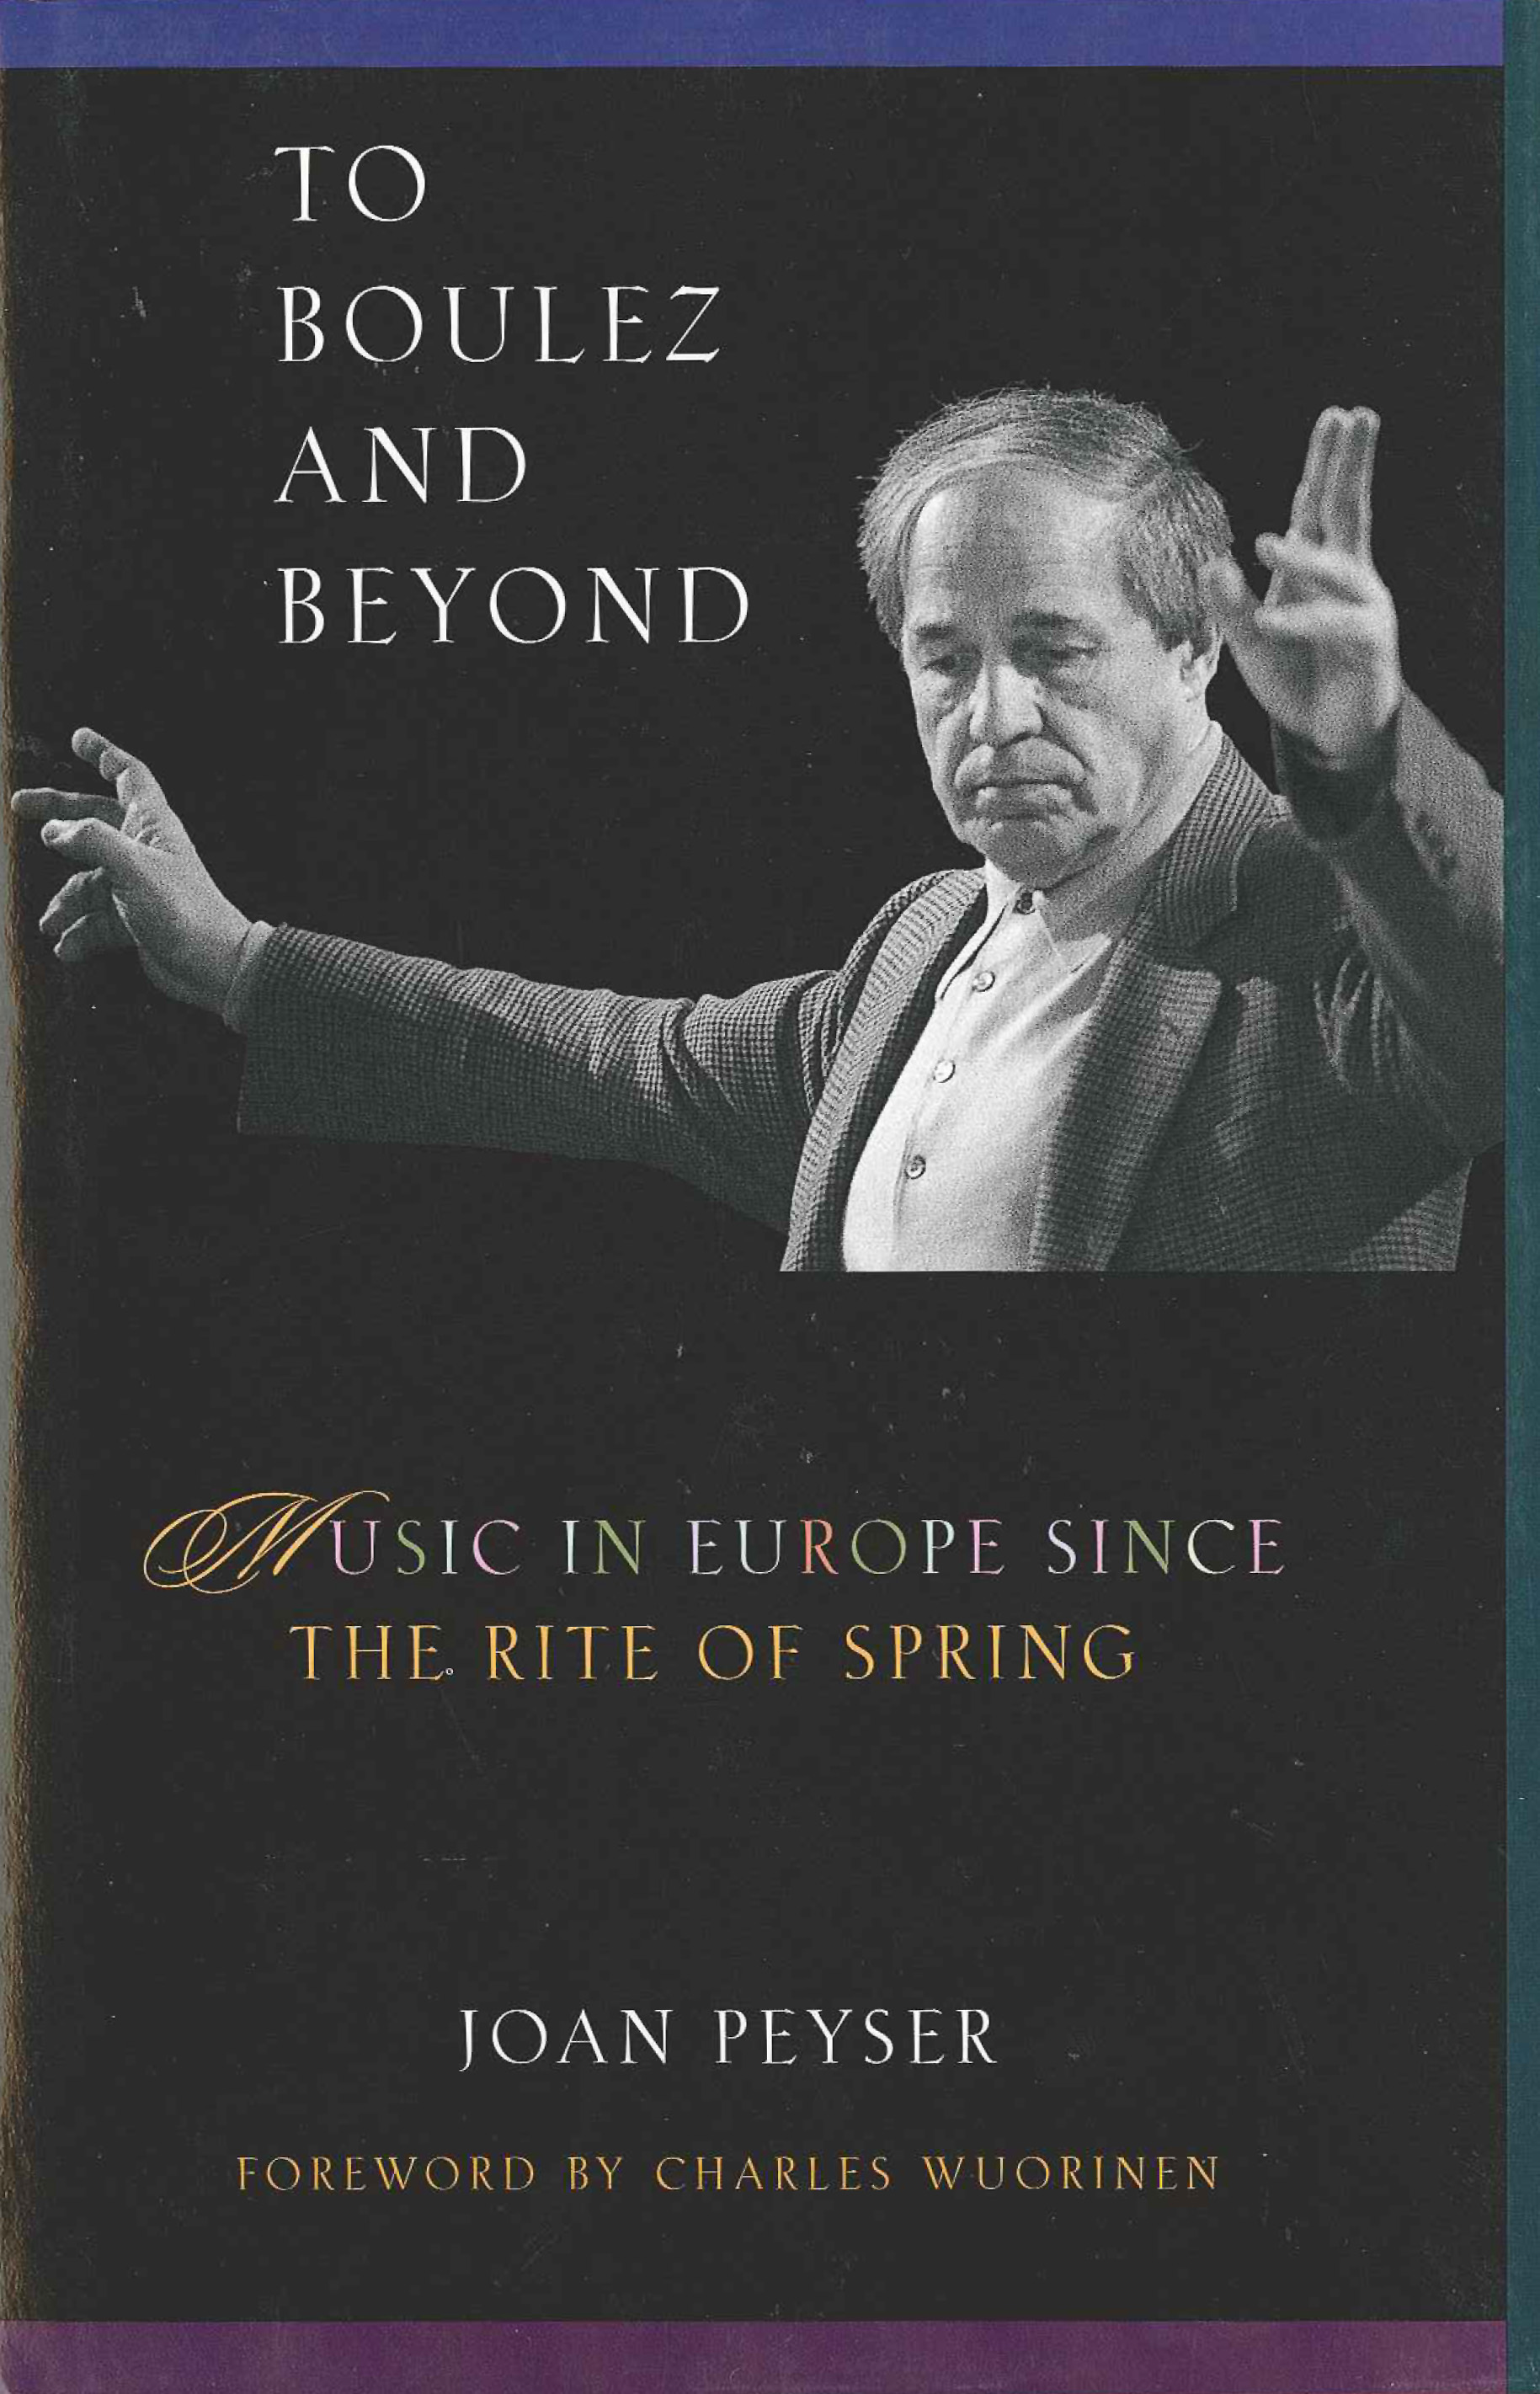 a literary analysis of the rite of spring Almost no musical work has had such a powerful influence or evoked as much controversy as igor stravinsky's ballet score the rite of spring one of stravinsky's most significant collaborators was serge diaghilev, director of the ballets russes the two were close working partners for some twenty.